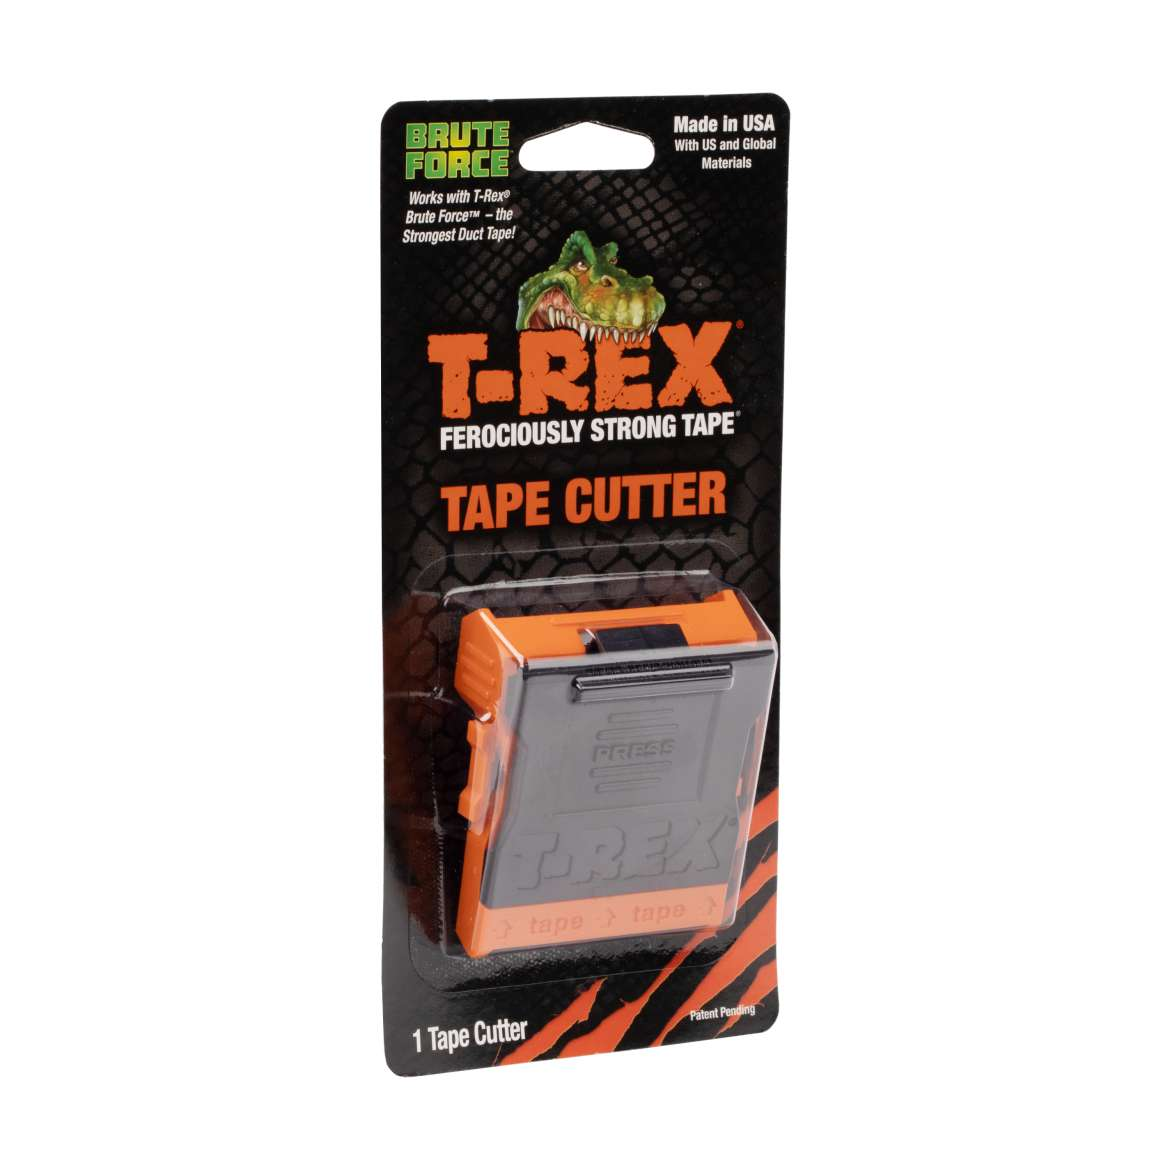 T-Rex® Tape Cutter - Gray and Orange, 48 mm.